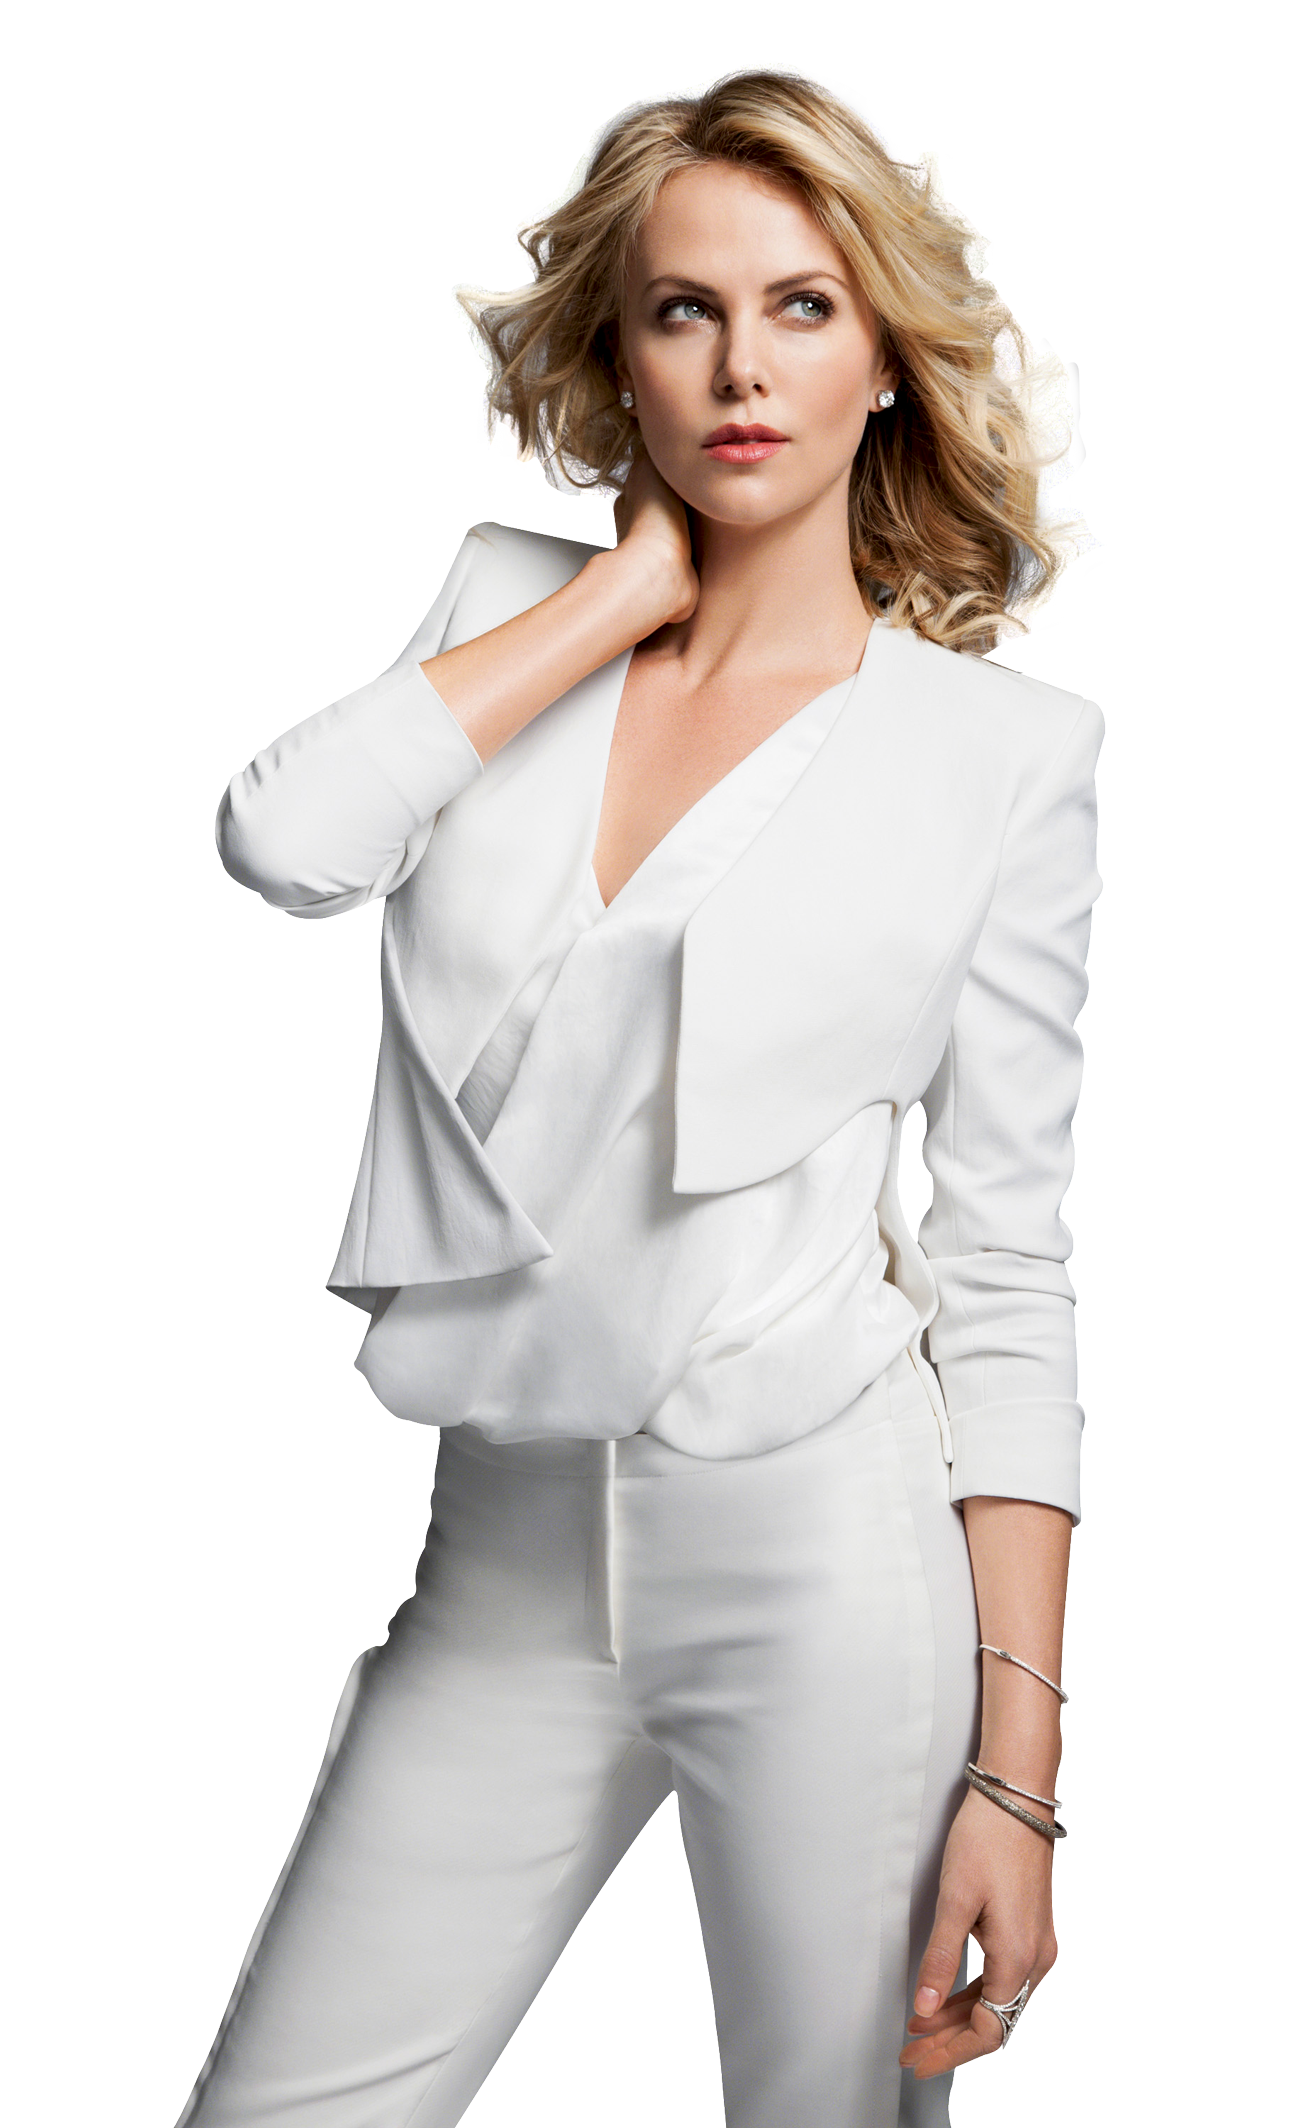 Charlize Theron Free Download PNG Image